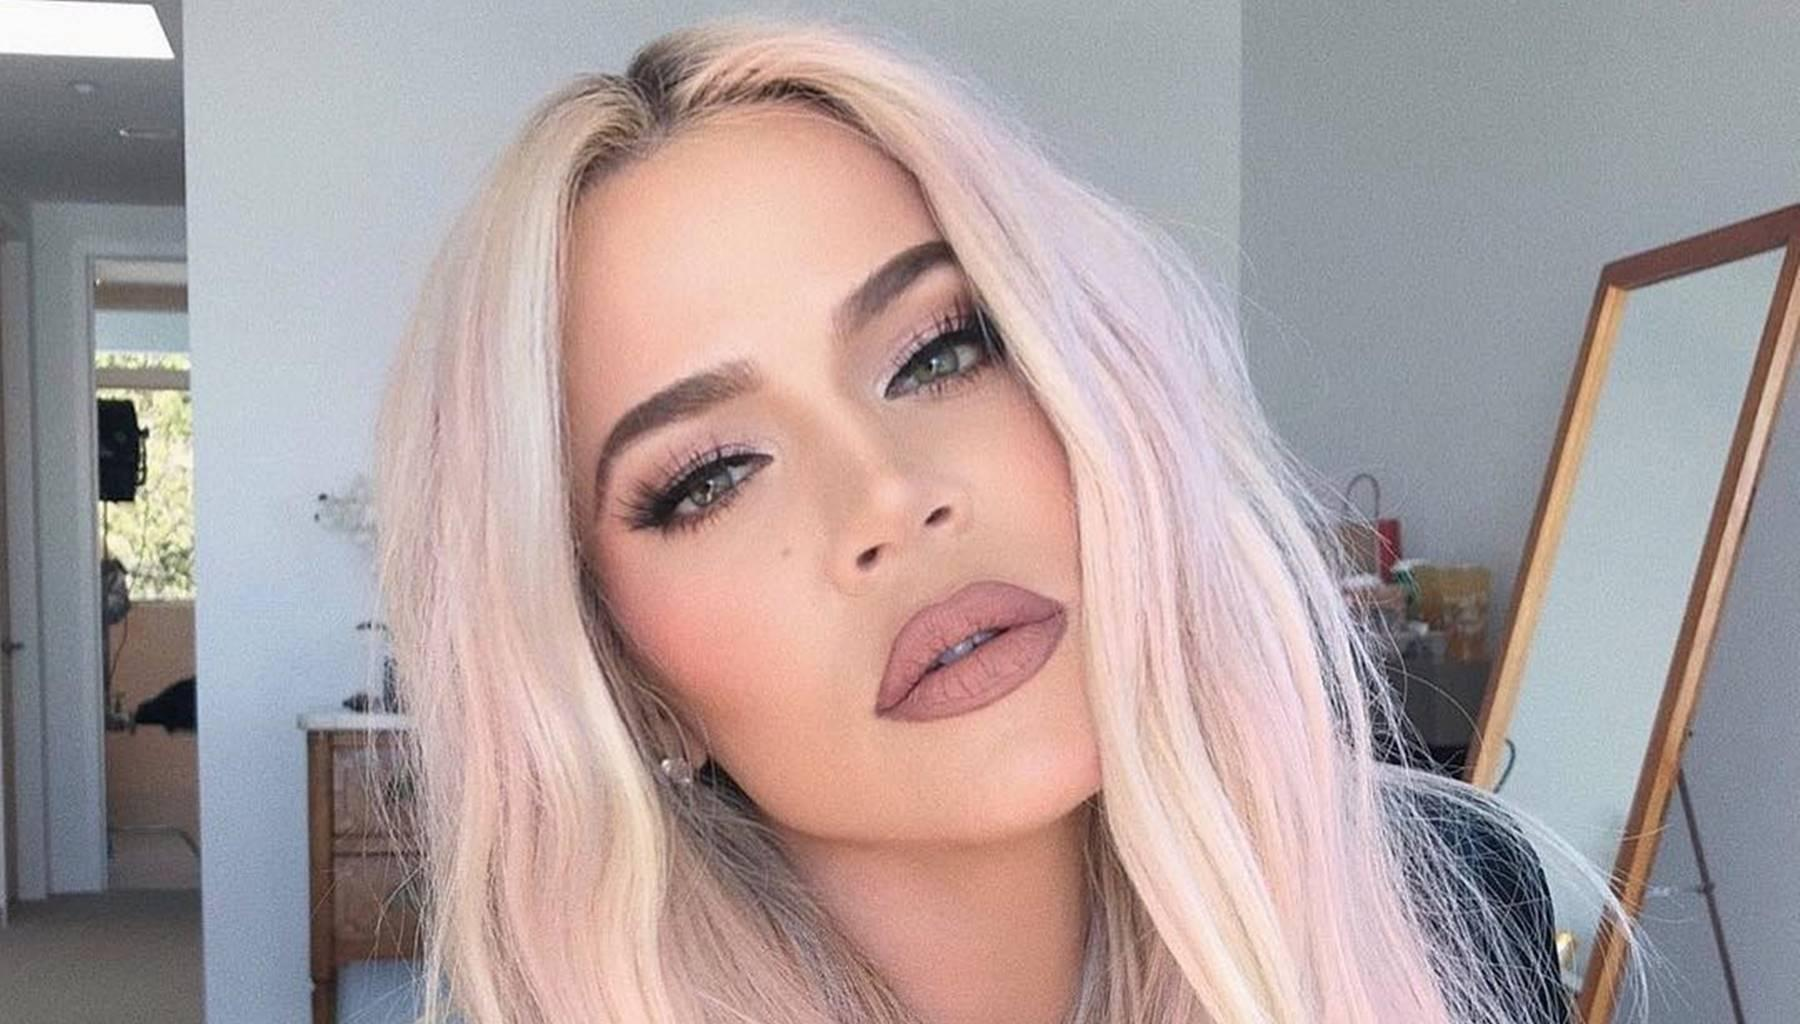 Khloe Kardashian Looks Unrecognizable In Sizzling New Photos -- Will Tristan Thompson Like Her Shockingly Thin Figure?